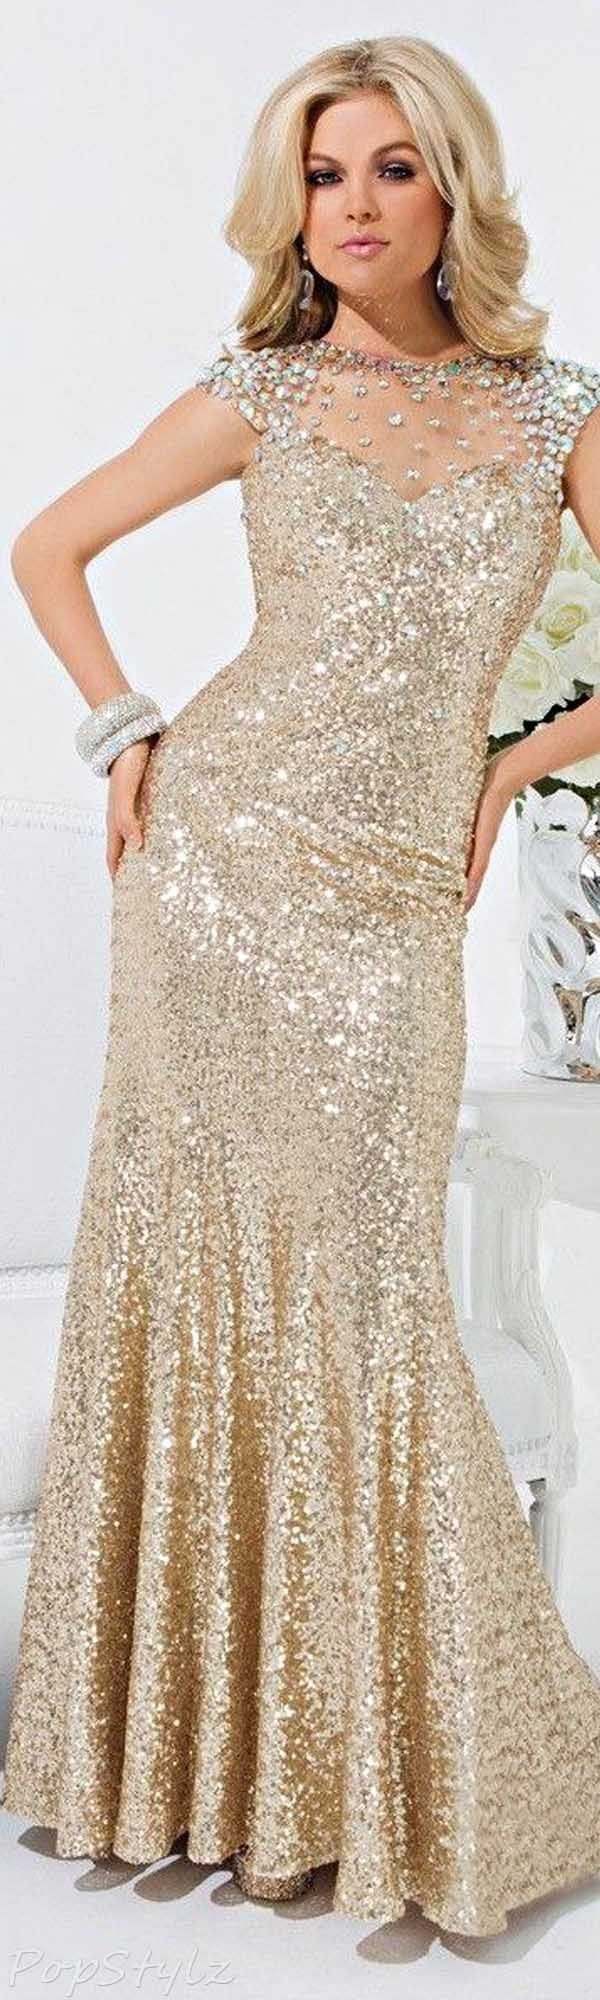 Tony Bowls 114539 Sequin Evening Gown